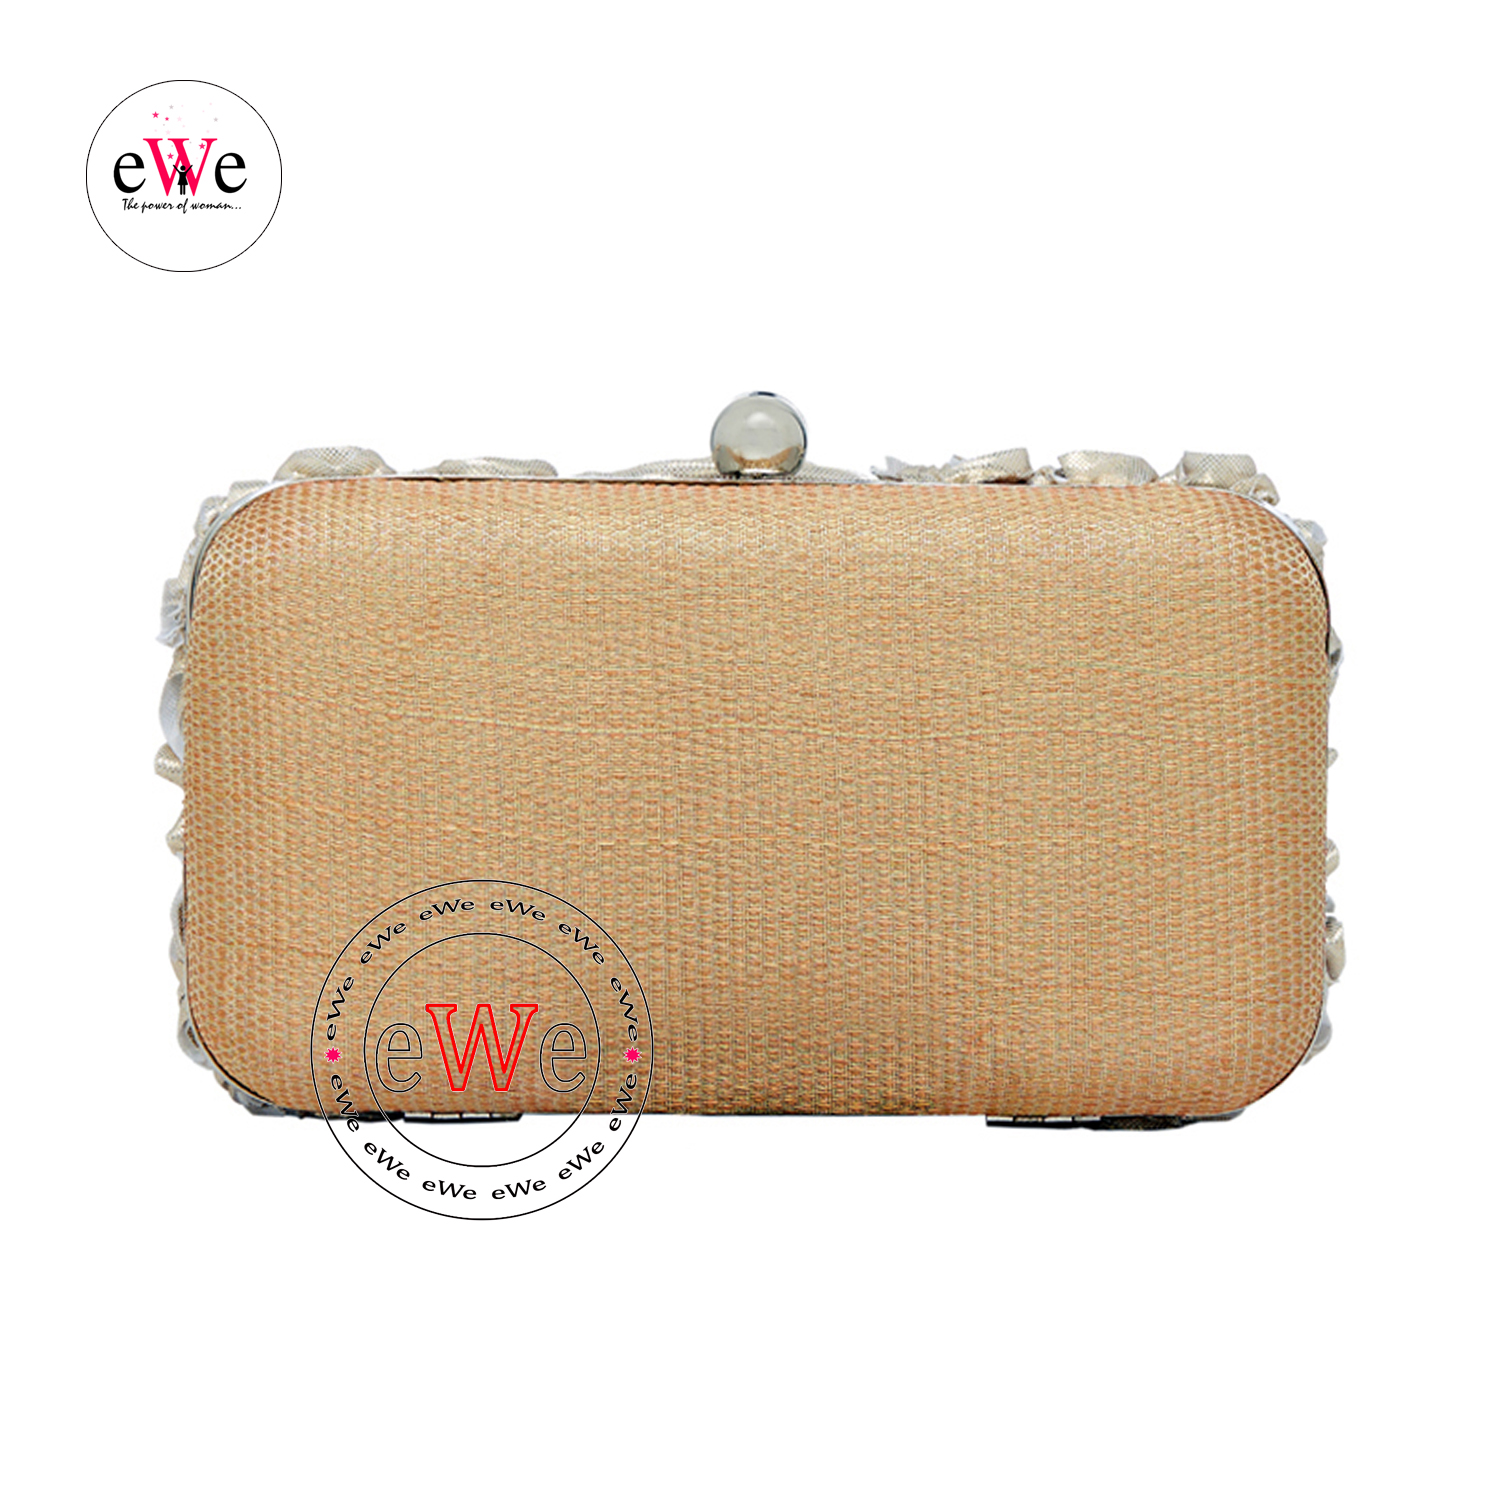 Lace Work Clutch